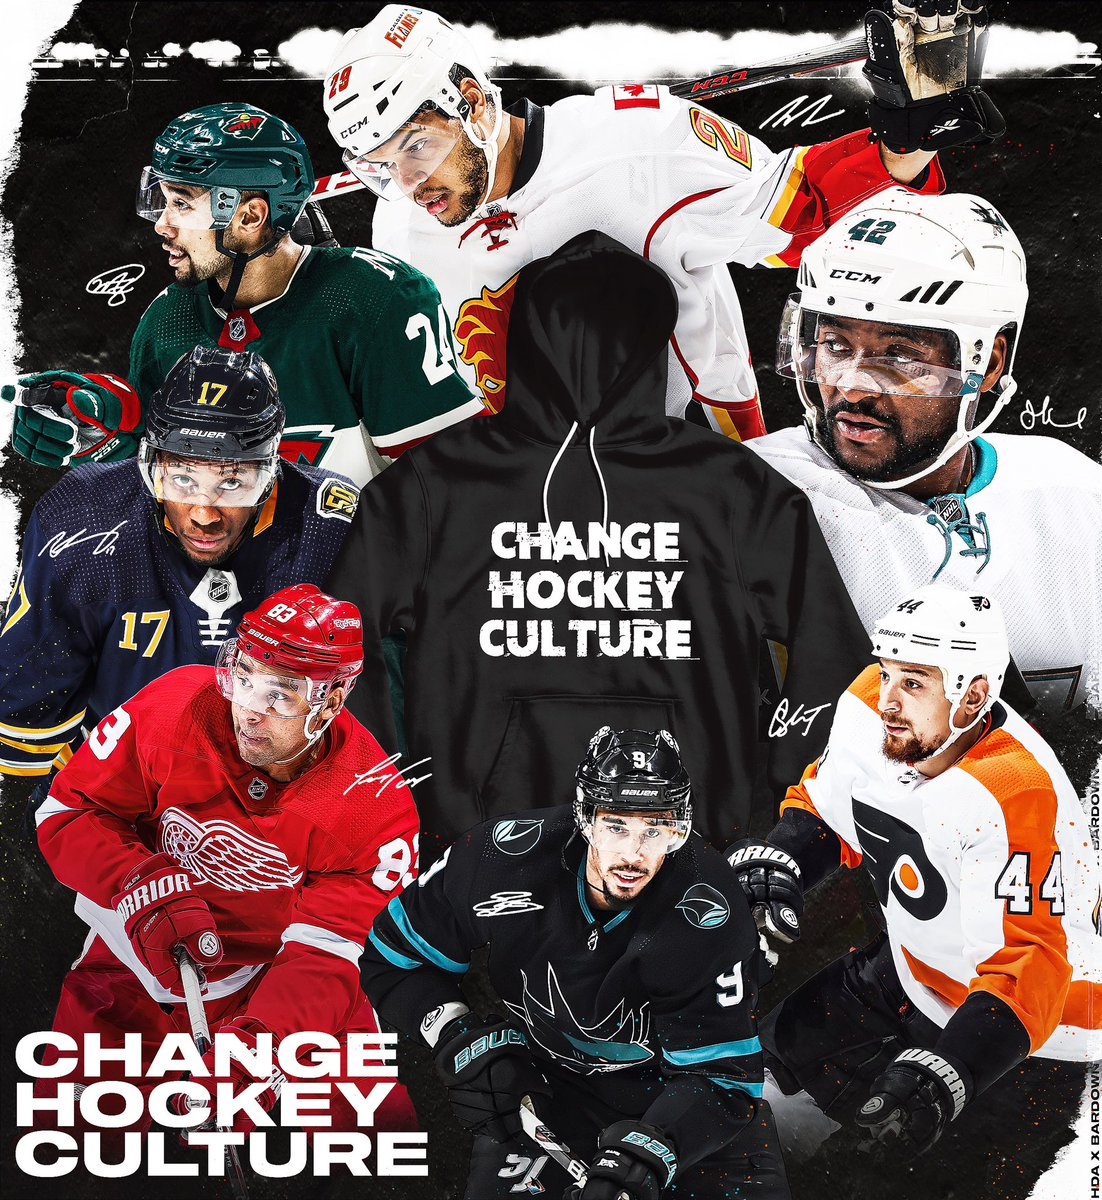 Evander Kane On Twitter Support The Hockey Diversity Alliance Changehockeyculture Puckracism Grab Your Own Shirt Or Hoodie At Https T Co Vbxaowgj8u Https T Co Szu1i95sca